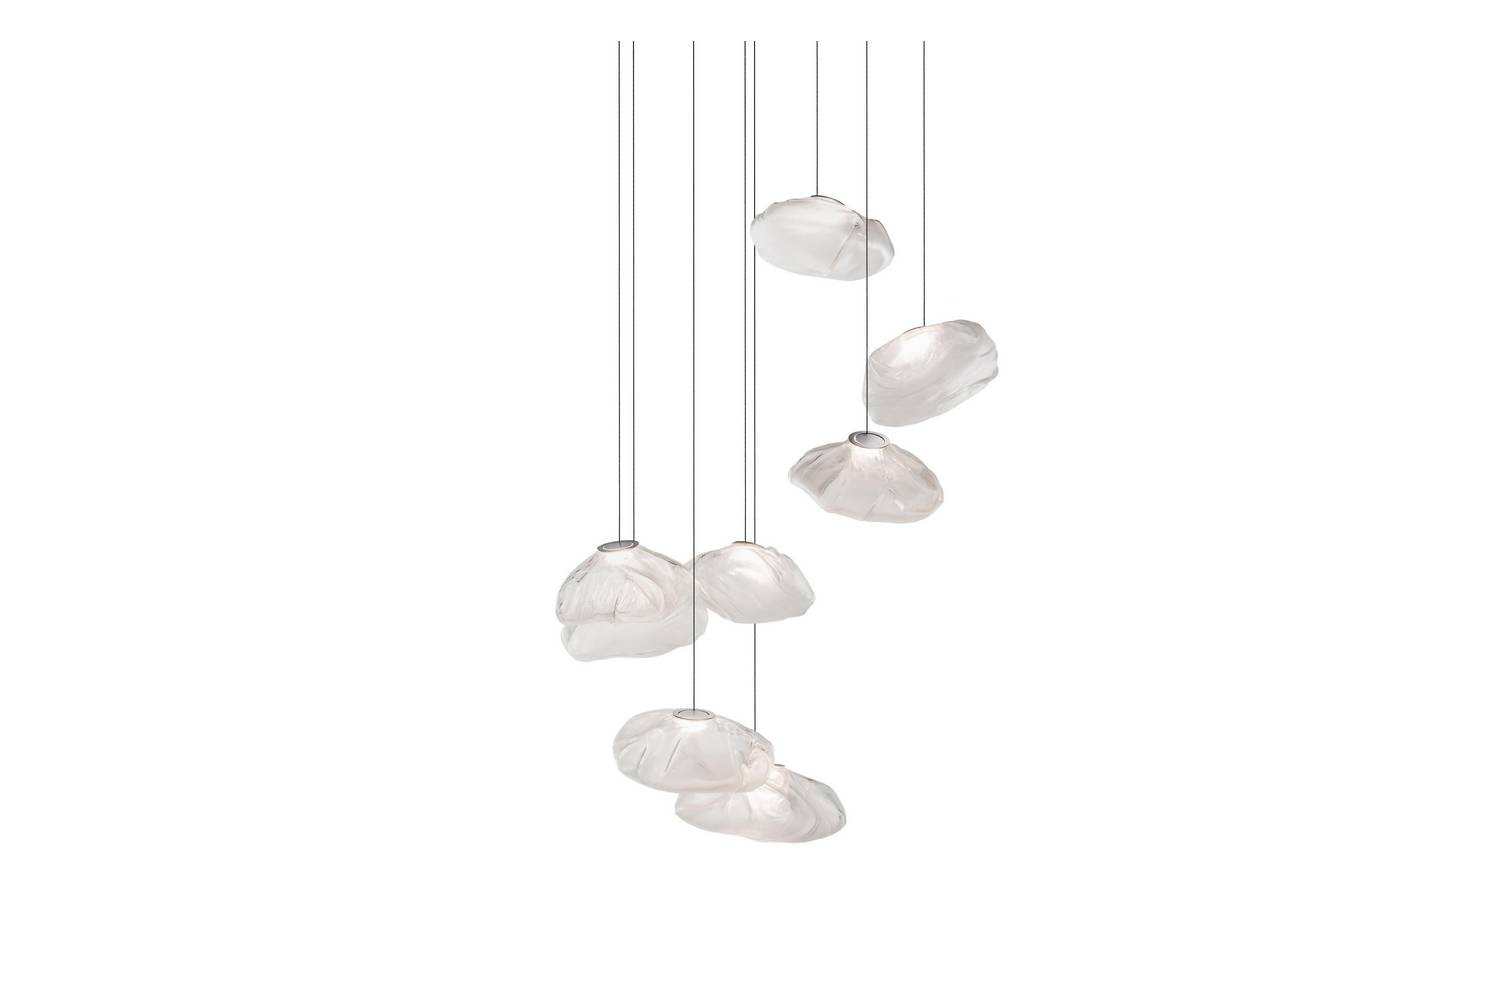 73.8 Suspension Lamp by Omer Arbel for Bocci